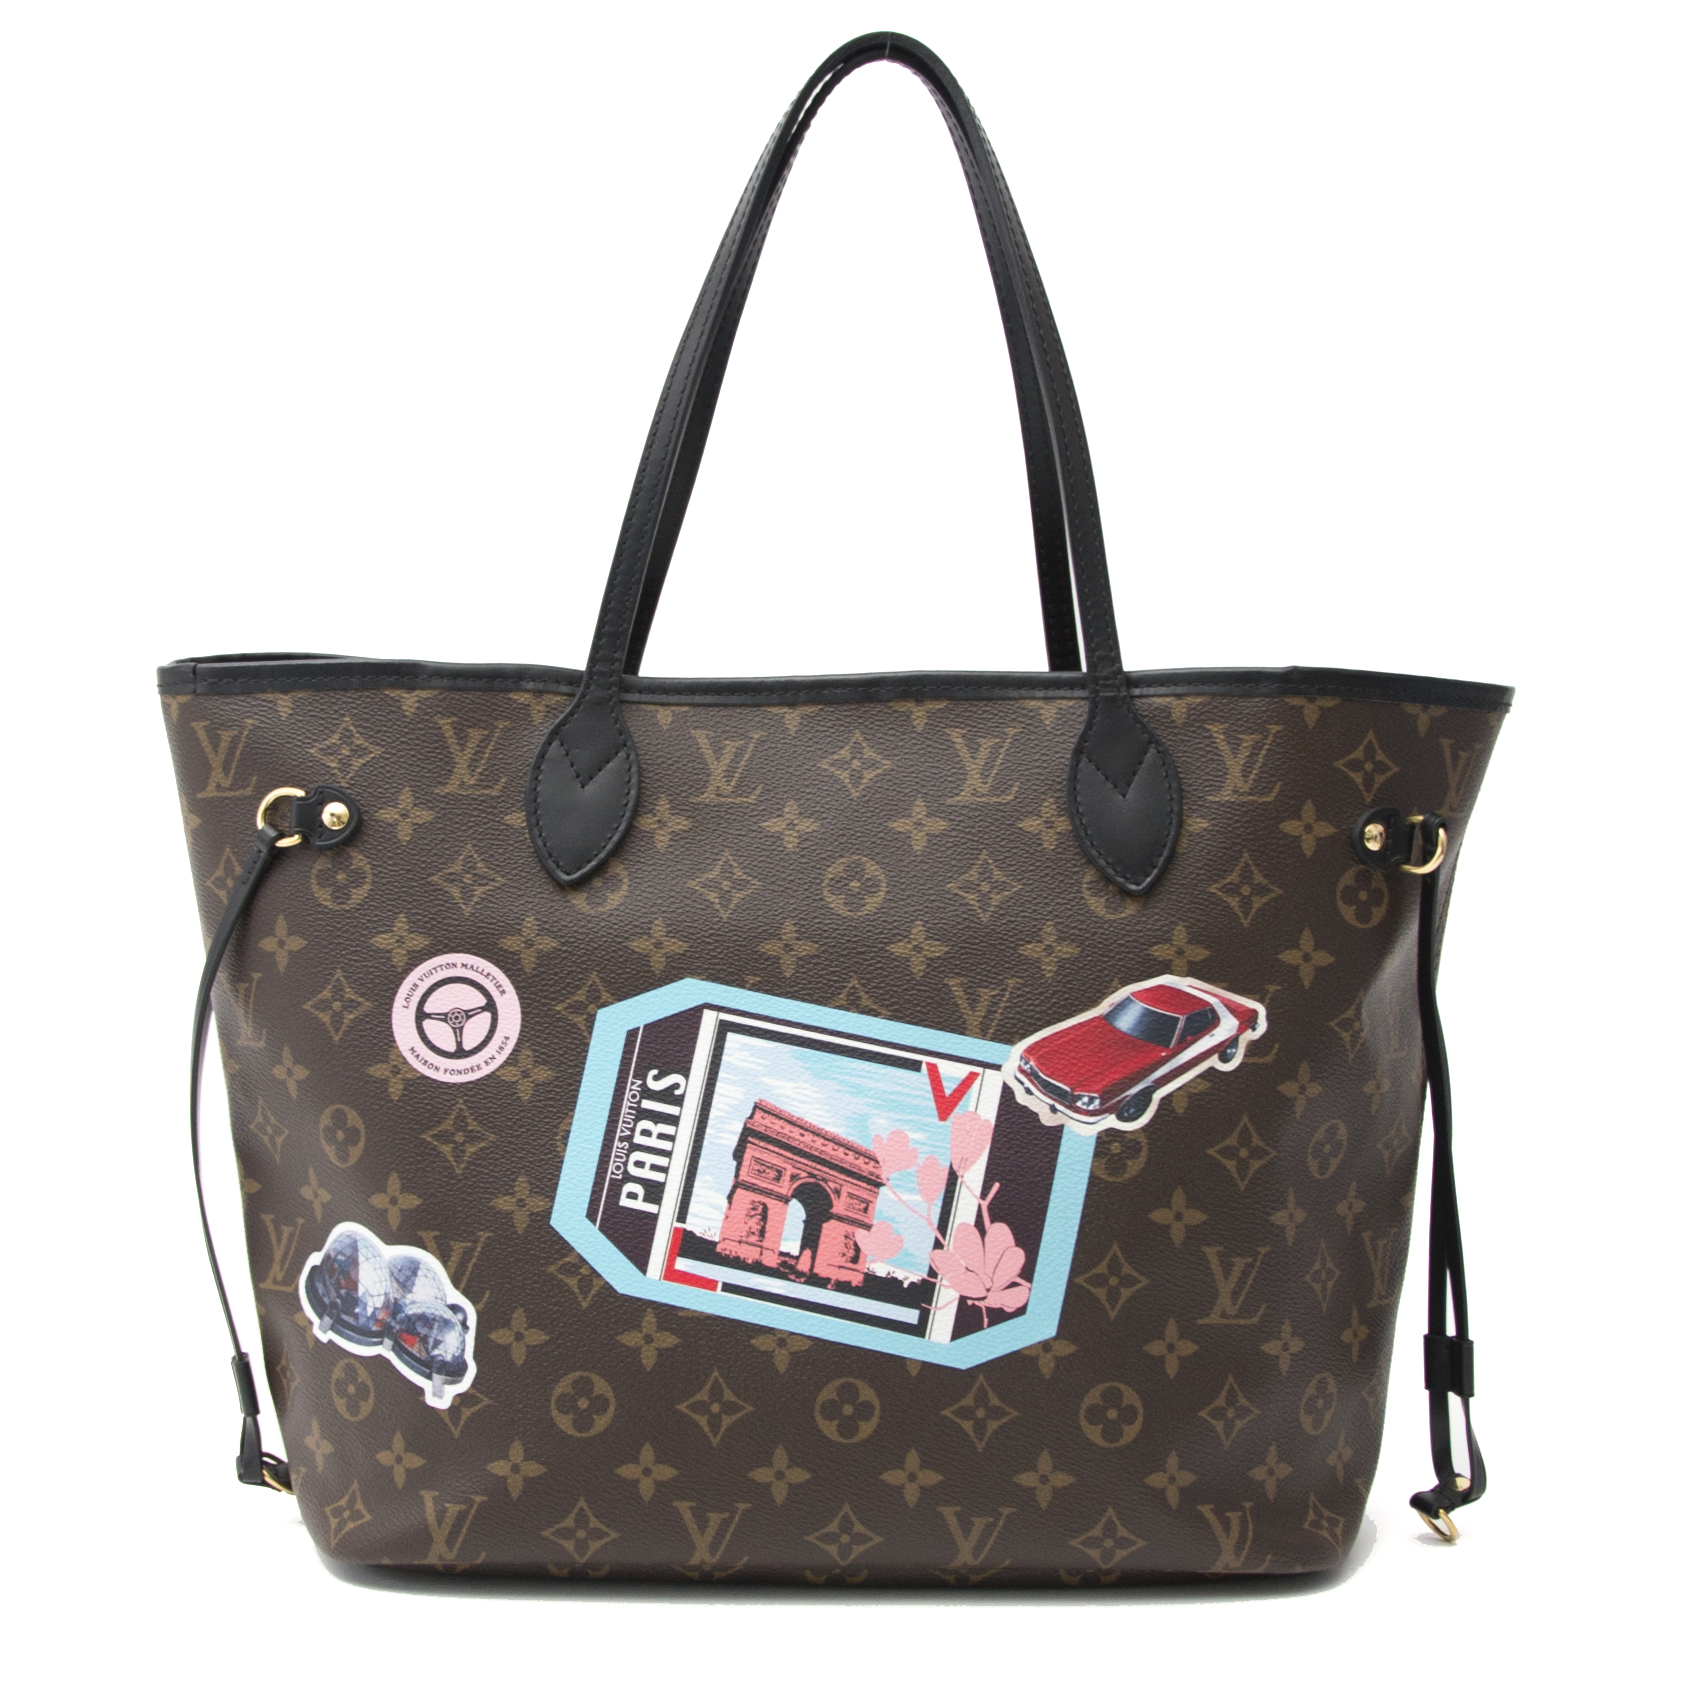 742a8ae79975 ... Koop uw authentieke Louis Vuitton Neverfull World City Tour MM bij  Labellov in Antwerpen